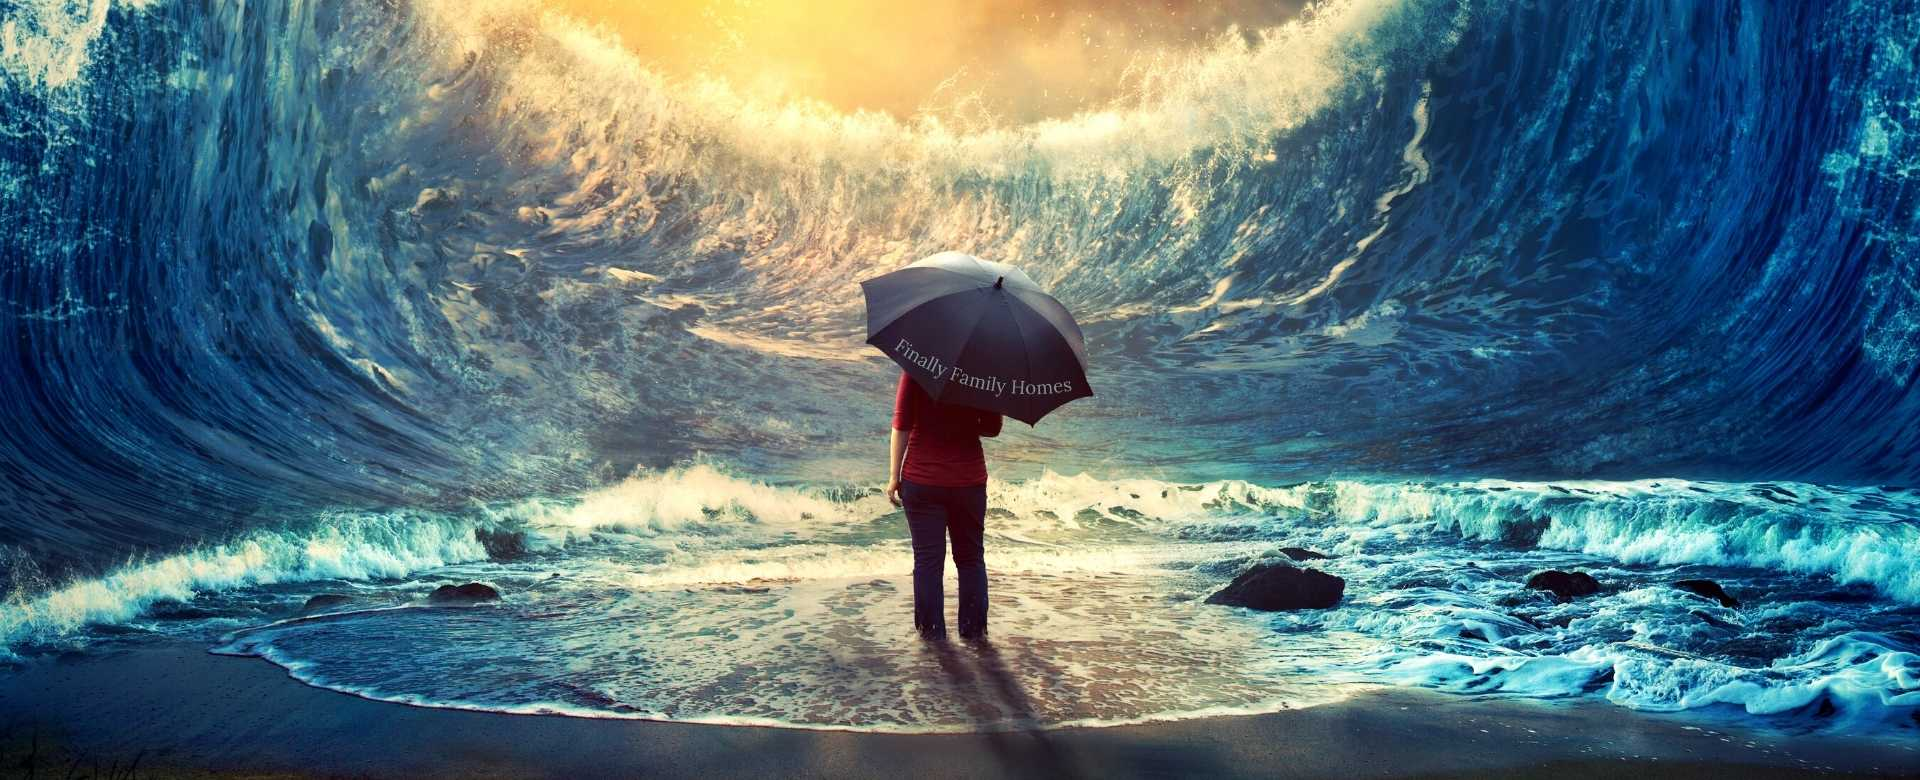 young woman standing in the middle of tall waves holding an umbrella